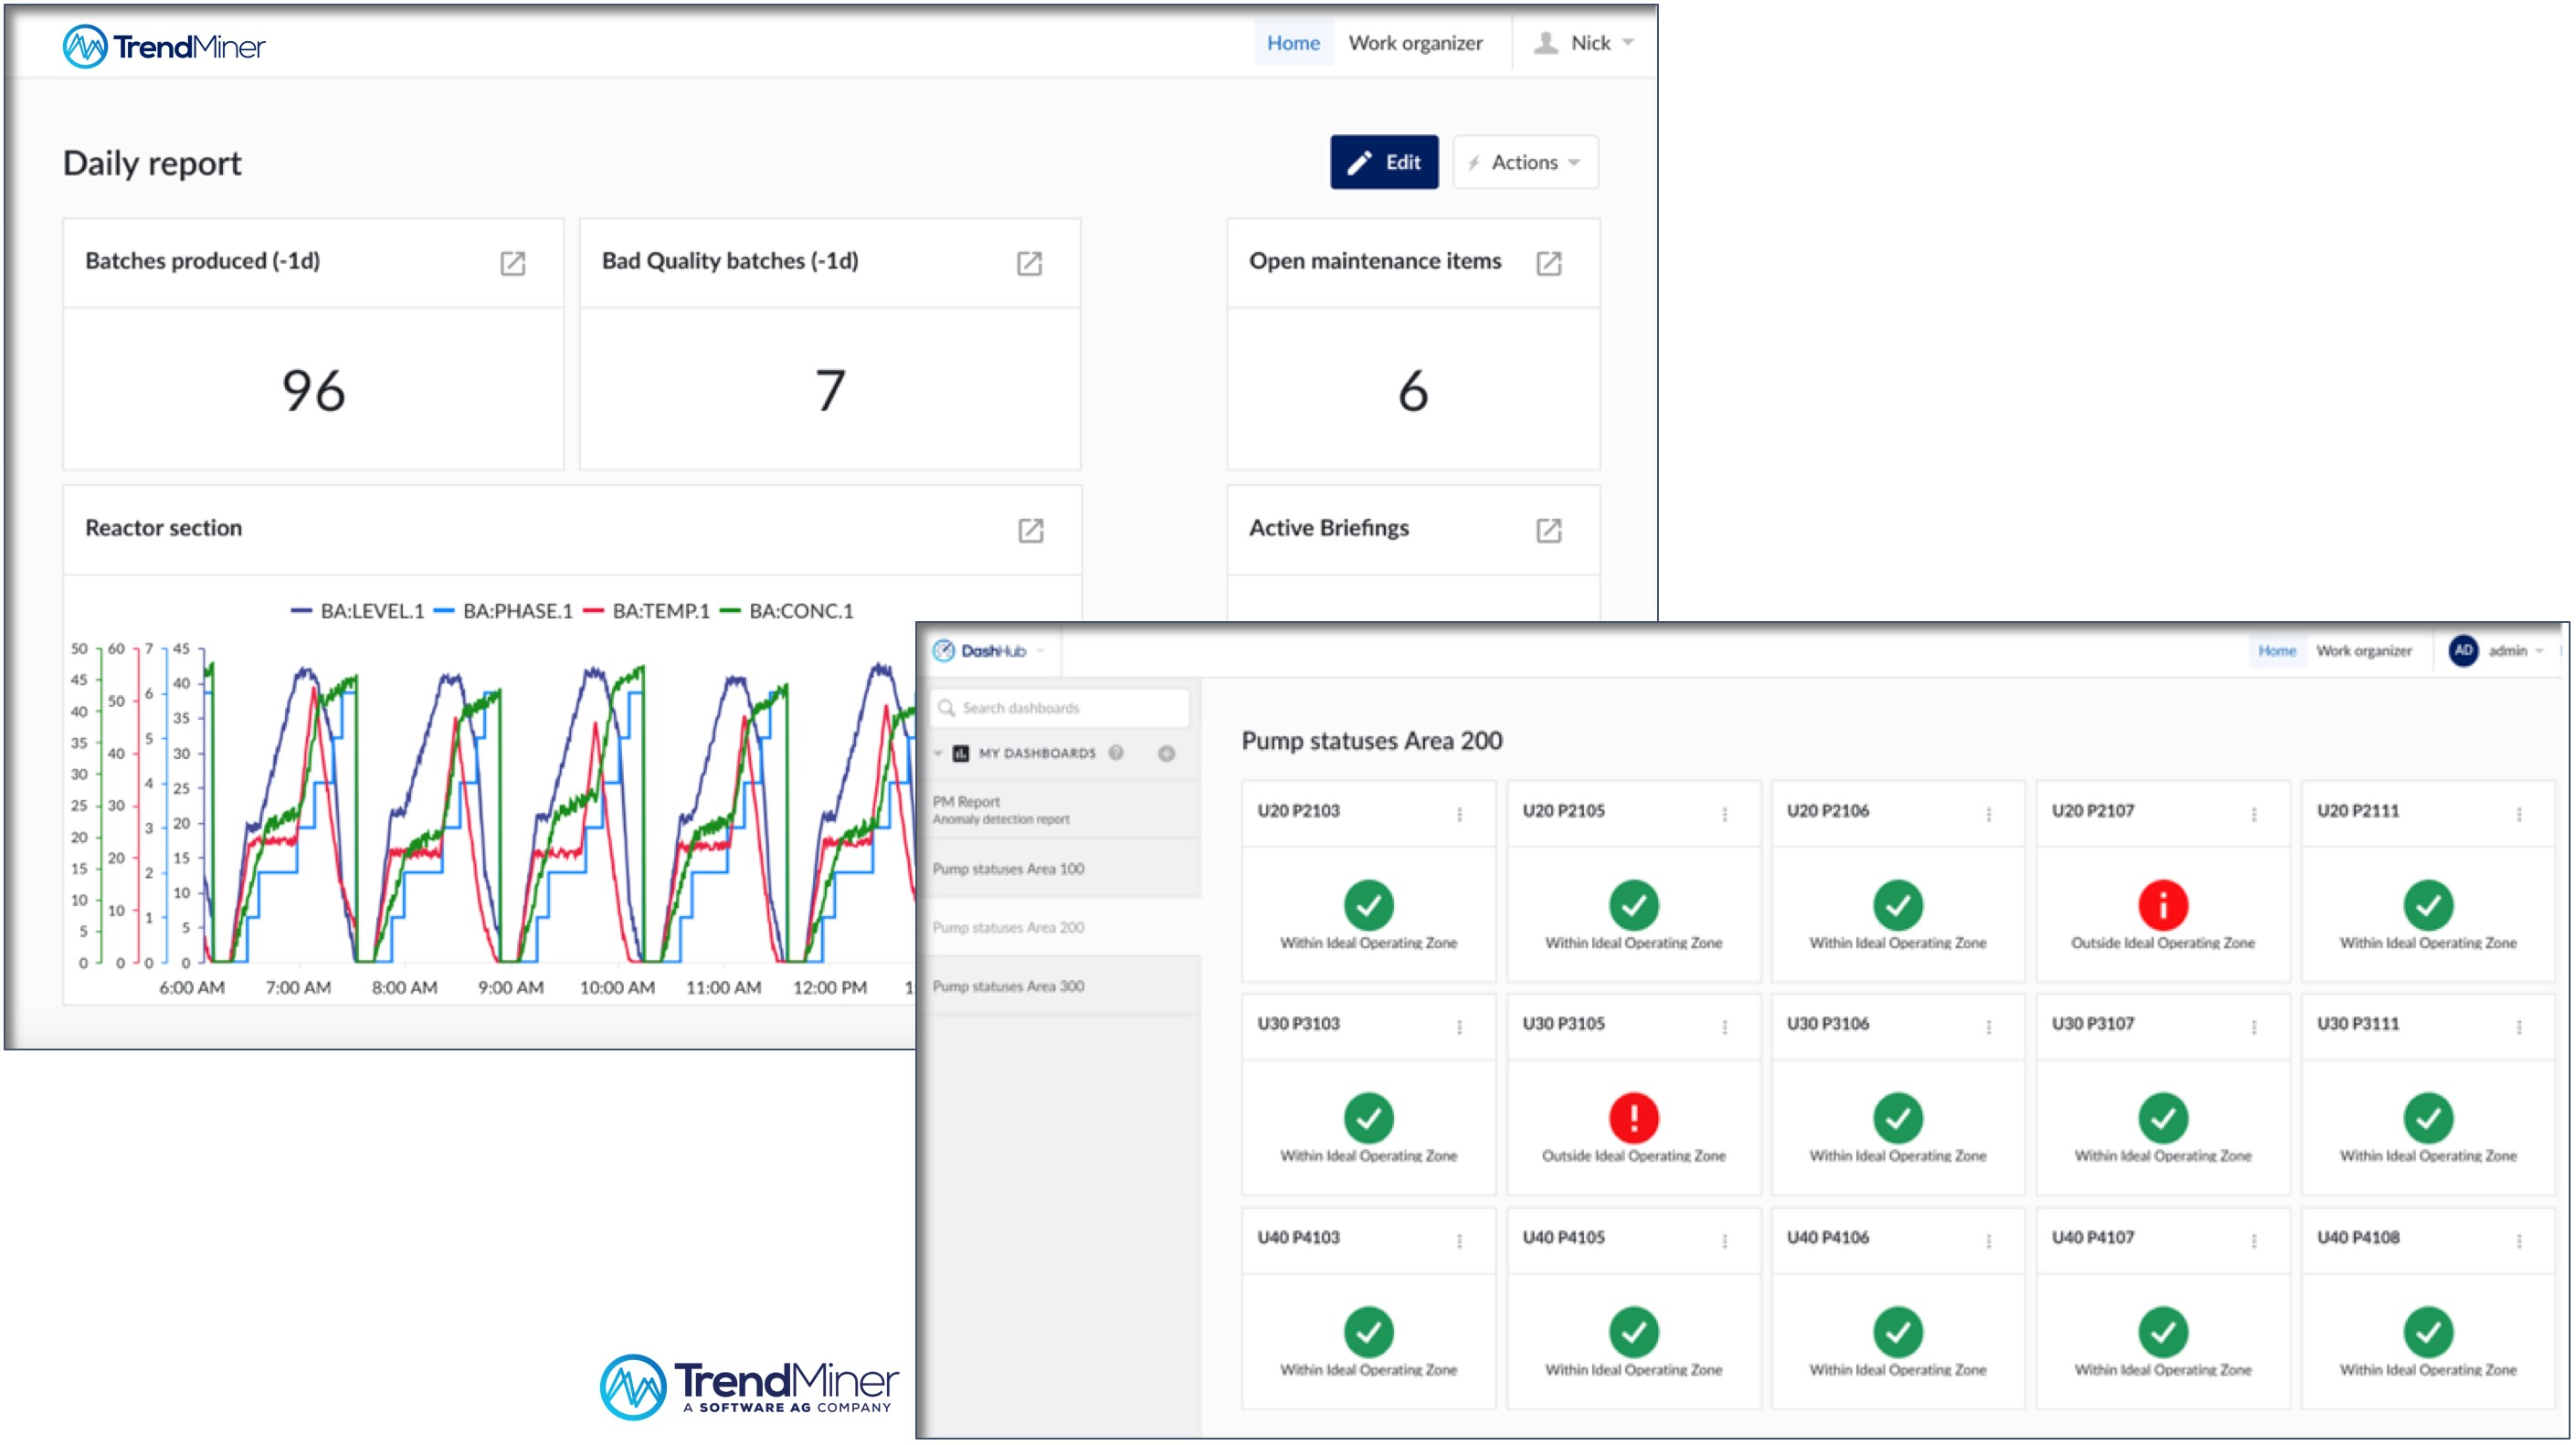 TrendMiner partners with eschbach to integrate TrendMiner and Shiftconnector products